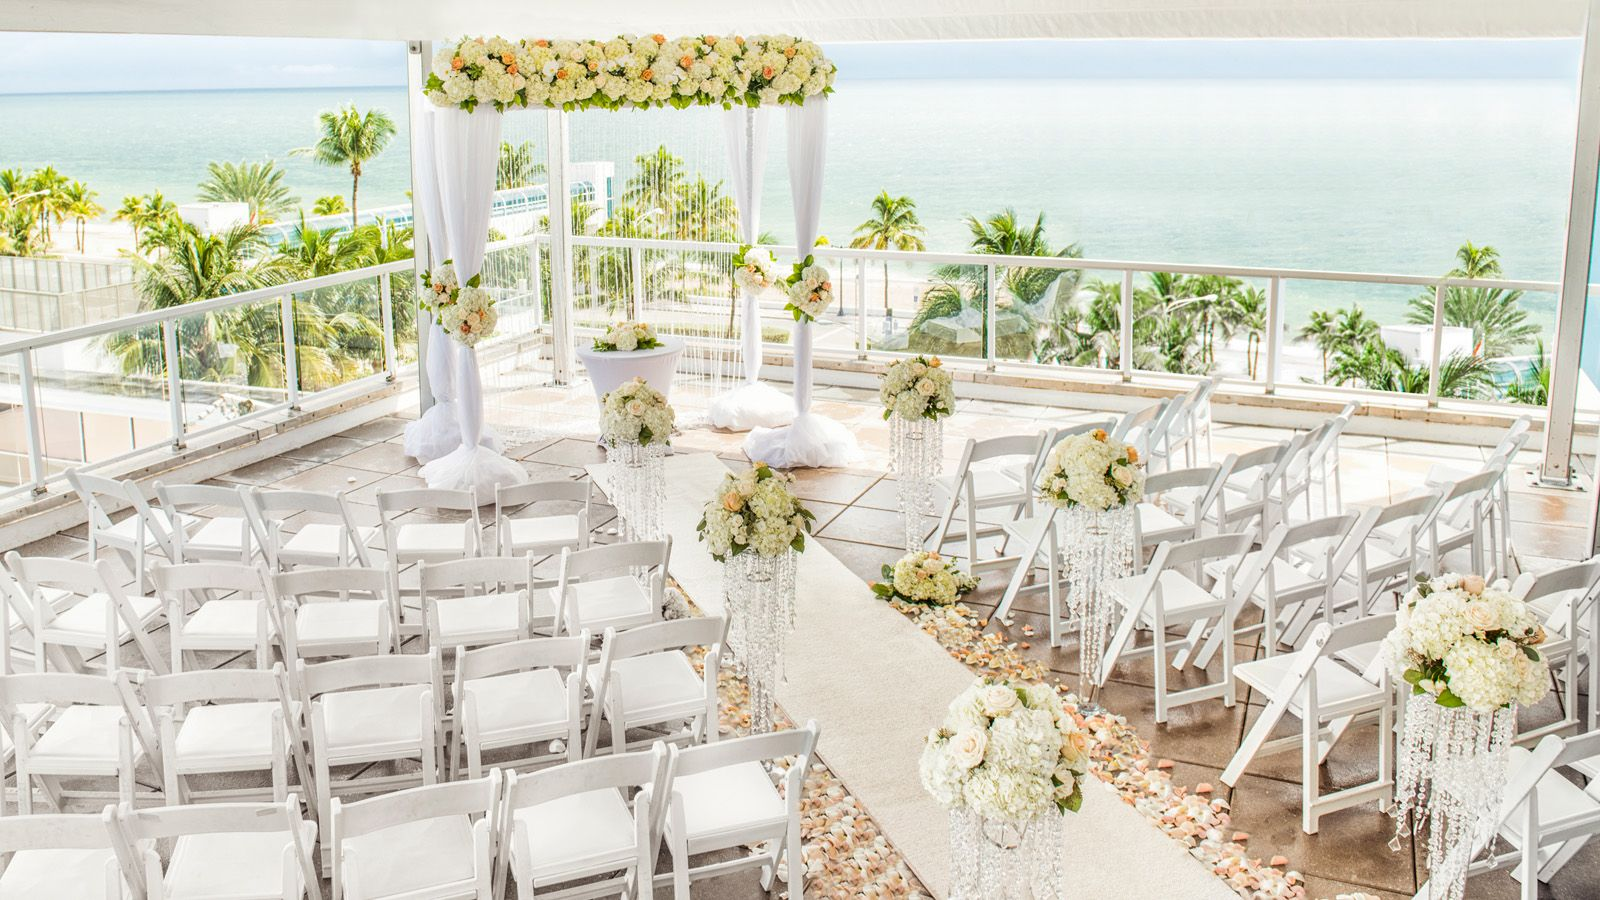 Wedding Venues In Fort Lauderale The Westin Fort Lauderdale Beach Resort Florida Wedding Venues Florida Beach Wedding Fort Lauderdale Beach Resort